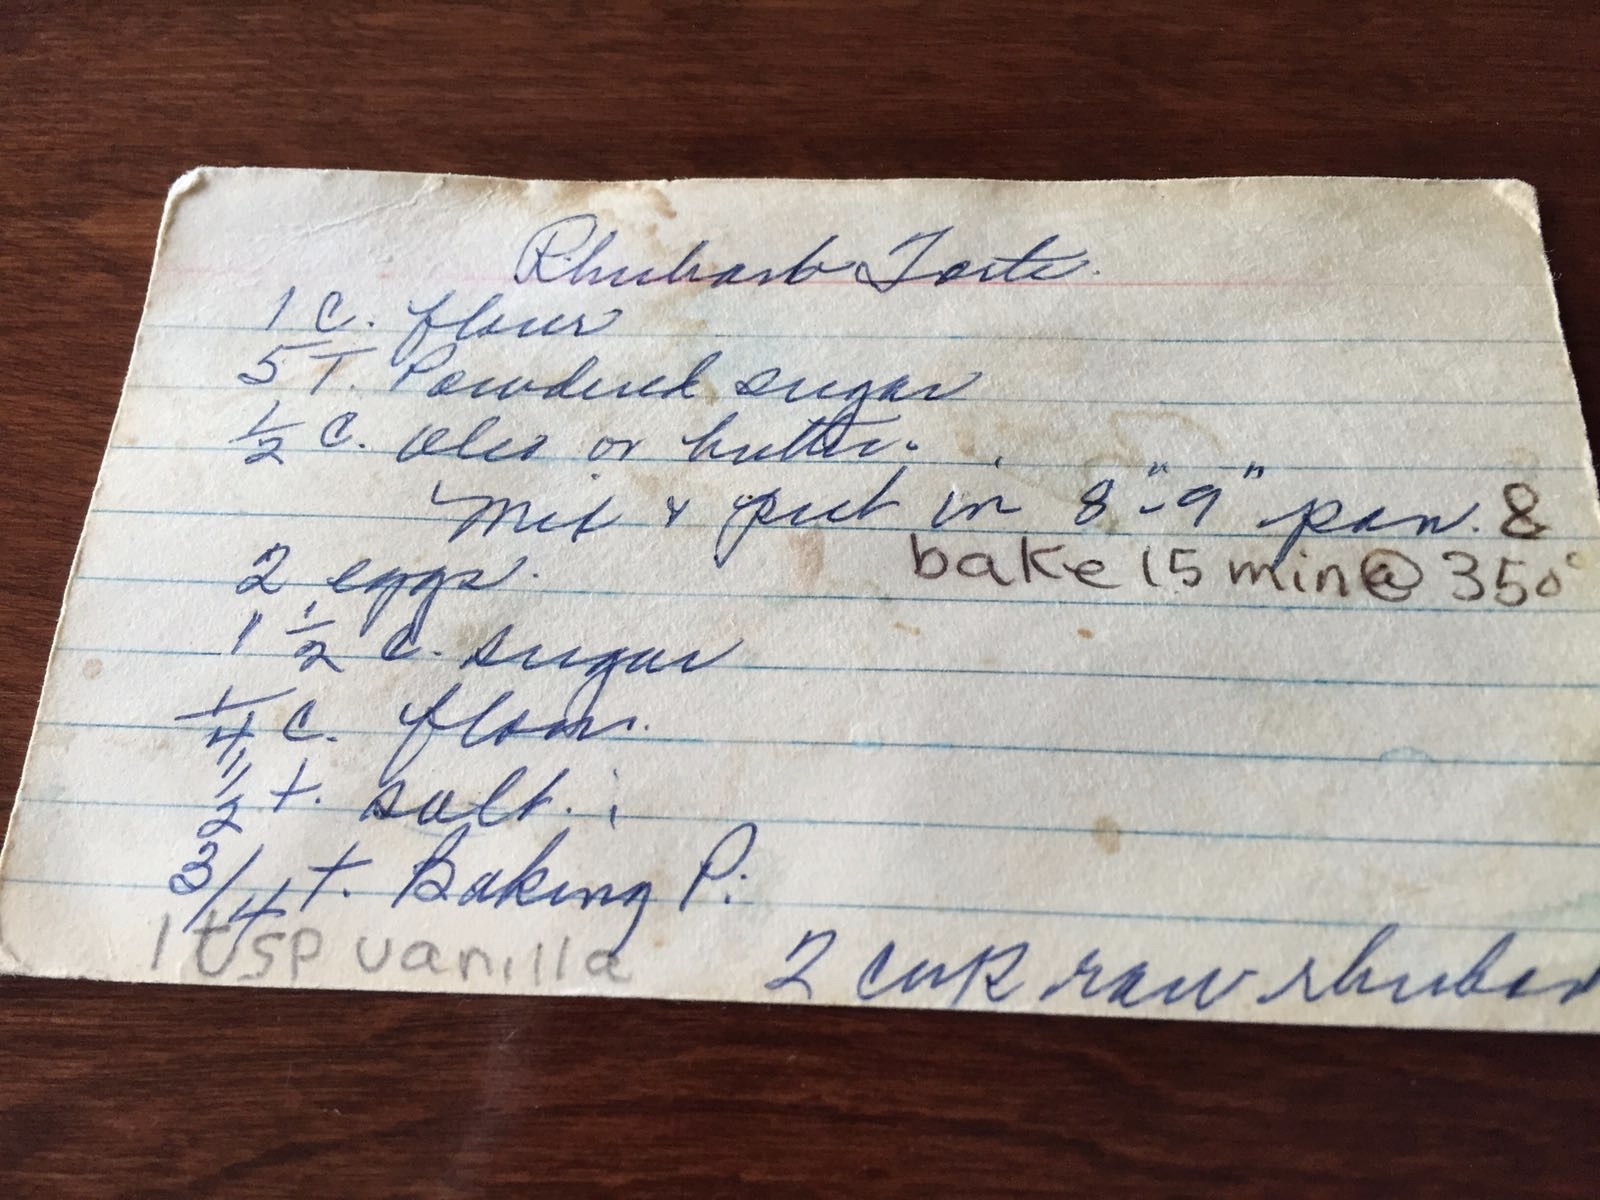 My mom got the recipe from my grandma, who likely got the recipe from one of her beauty shop clients.